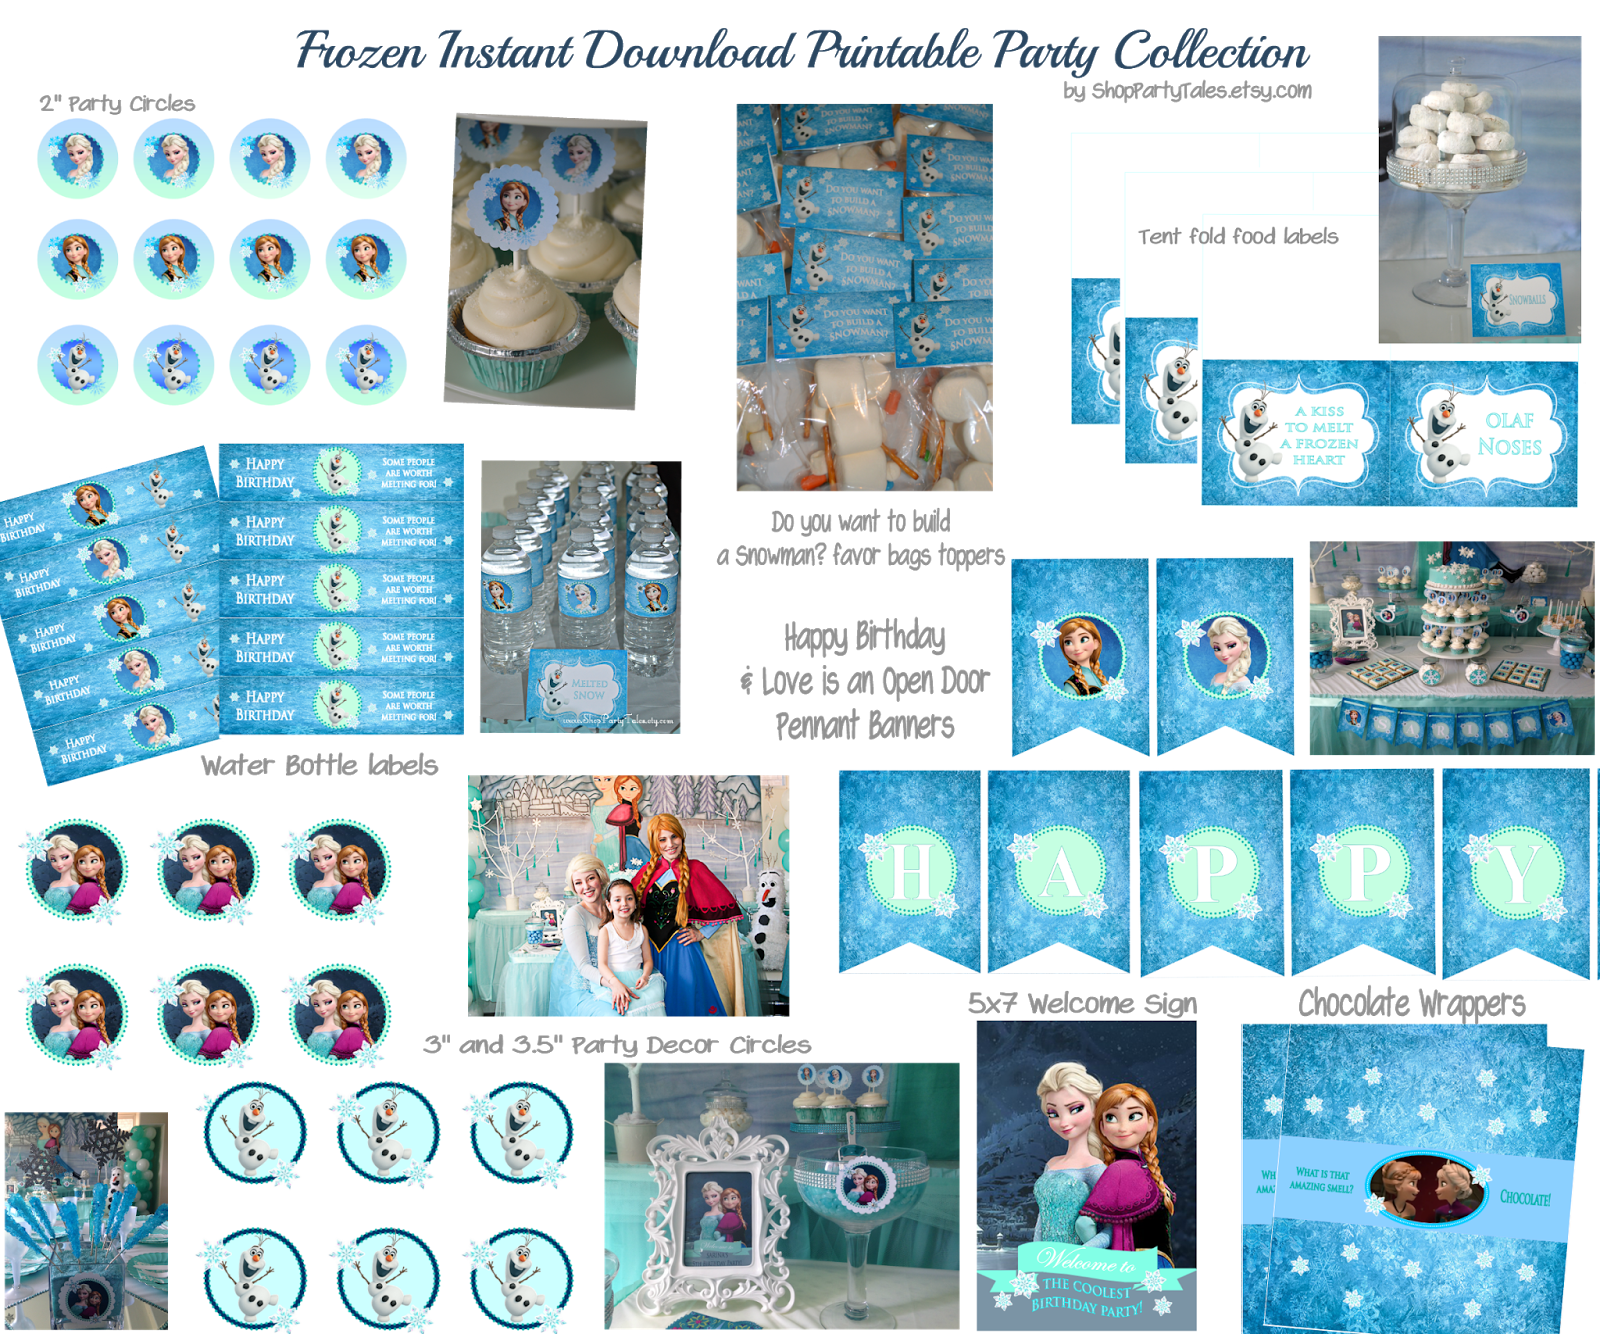 https://www.etsy.com/listing/207029288/frozen-disney-princess-anna-and-elsa?ref=shop_home_active_8&ga_search_query=frozen